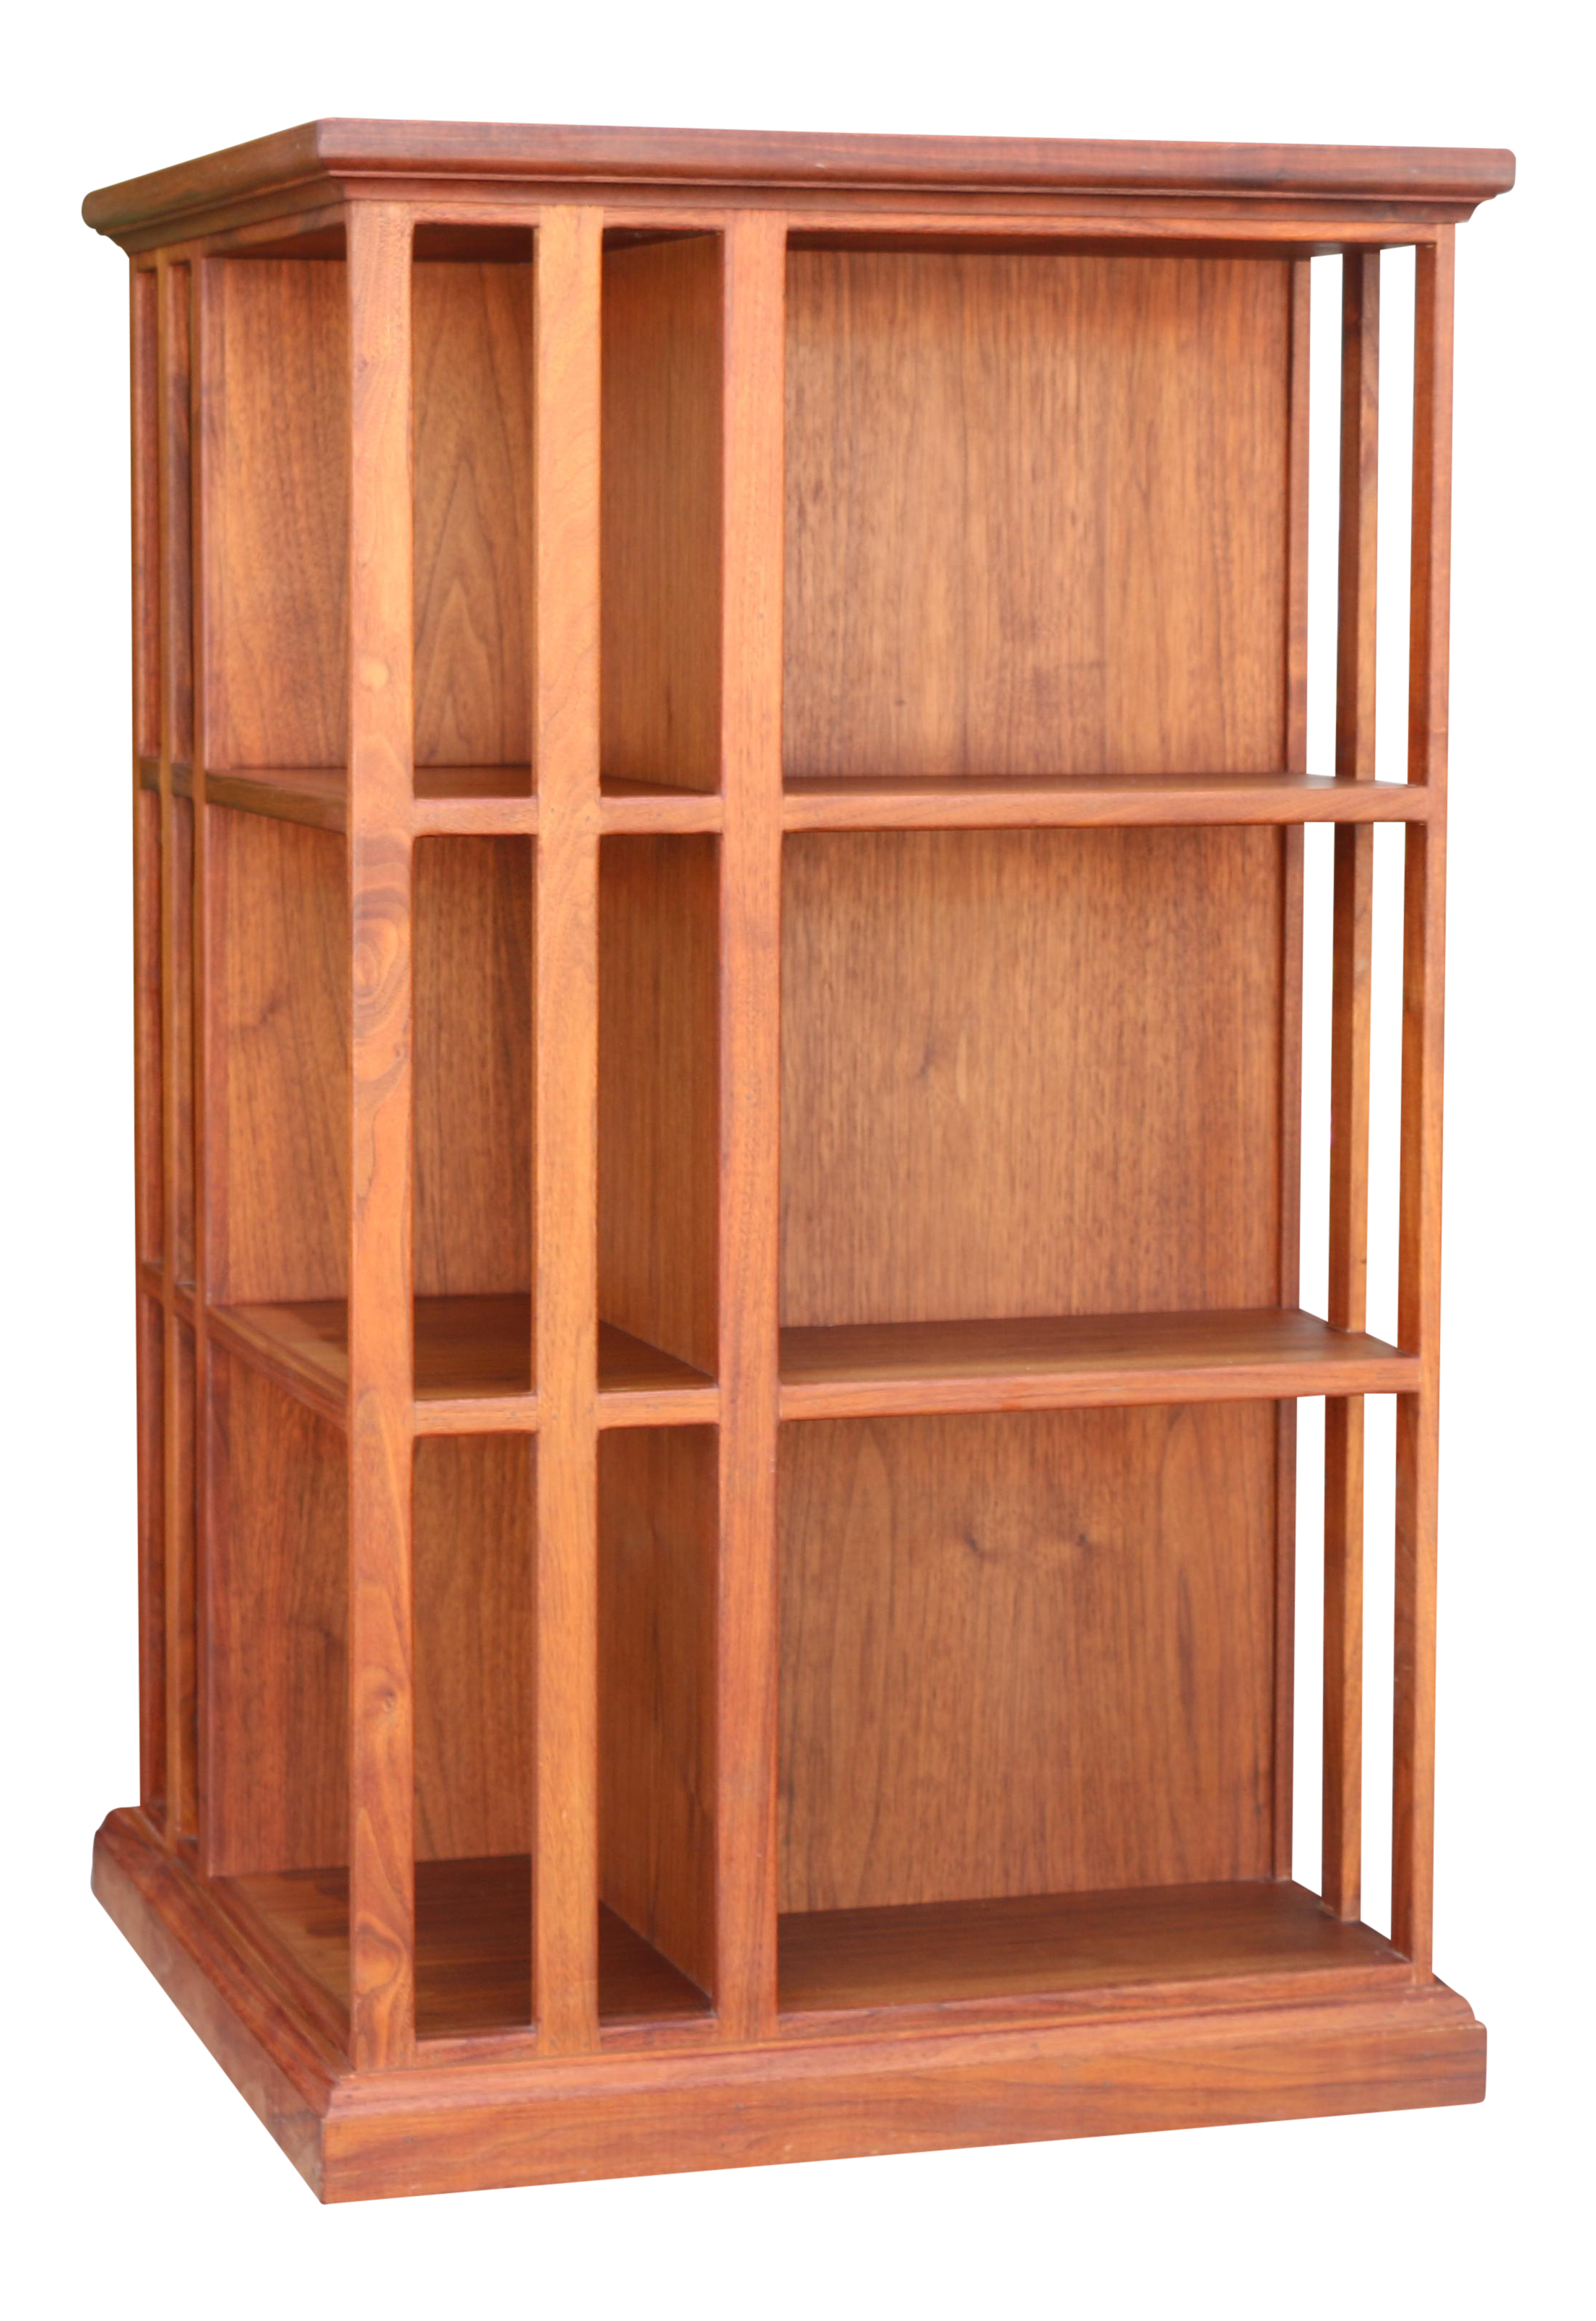 rotating ornament with bookshelf attractive corner kitchen bookcase home cube ideas fresh display chic finley hudson luxury ladder amazon of interior